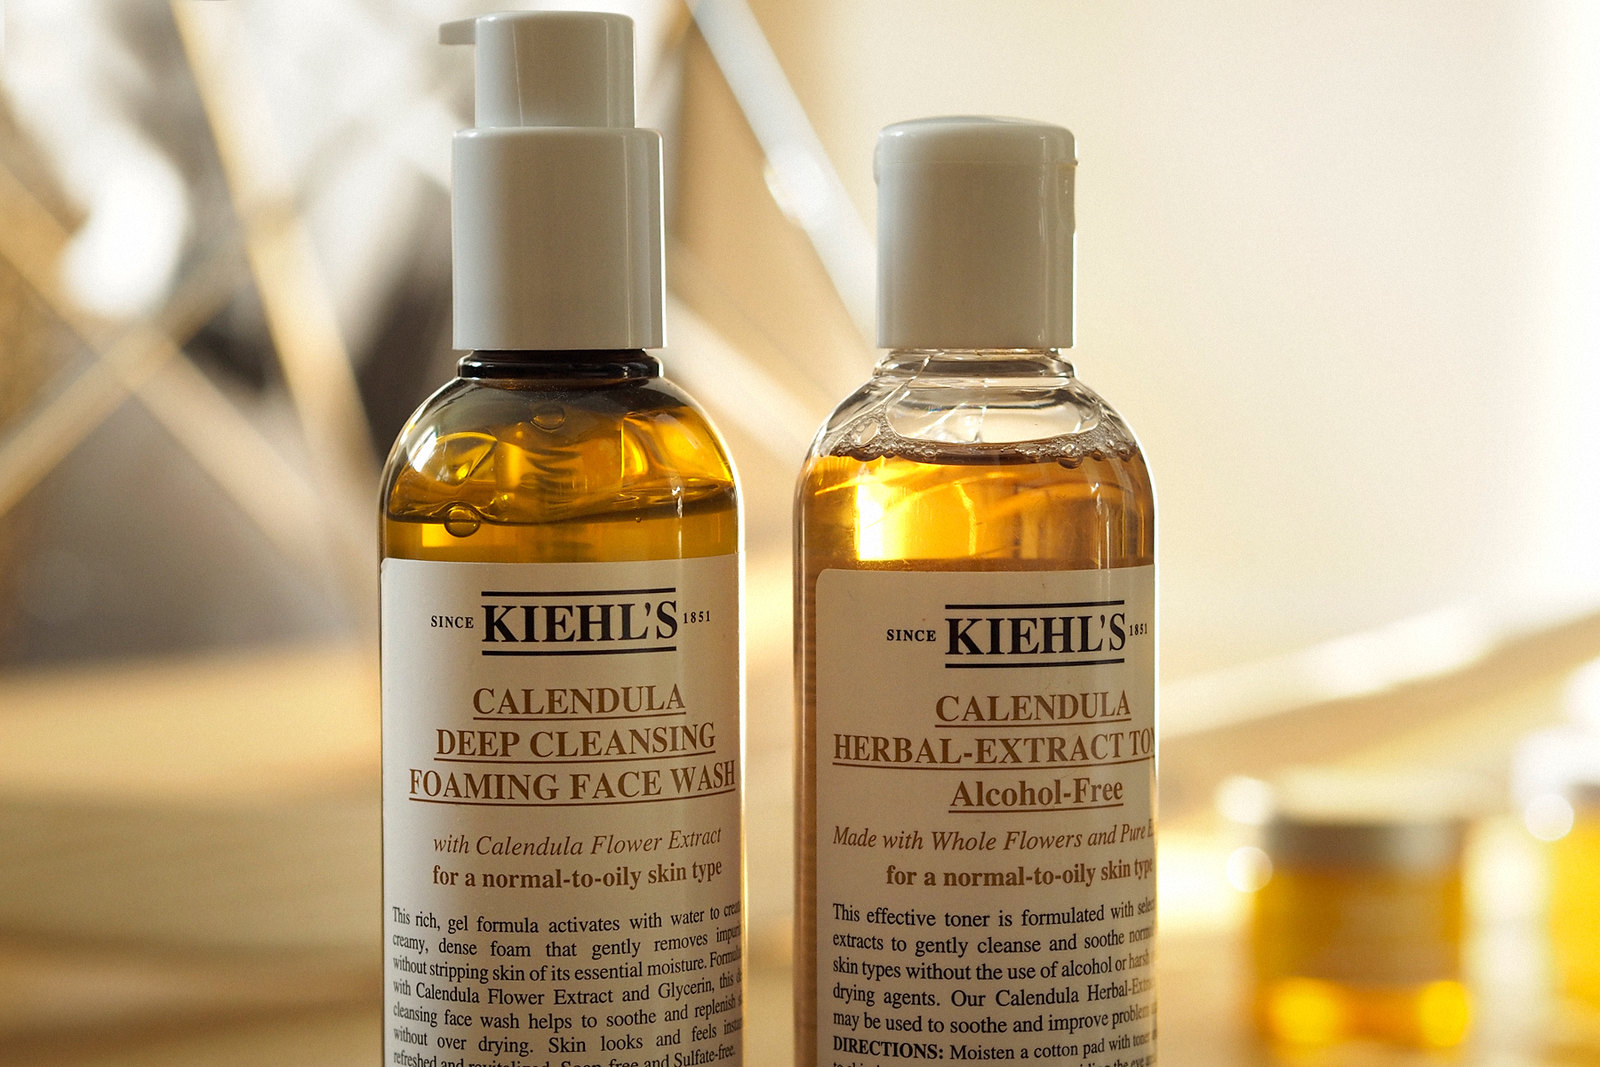 kiehl's morning routine beauty beautyblogger golden light amber beautiful wood calendula cleansing moisturizing mask skincare apothecary video blogger vlogger cats & dogs beautblog ricarda schernus düsseldorf max bechmann fotografie film nrw blog 3